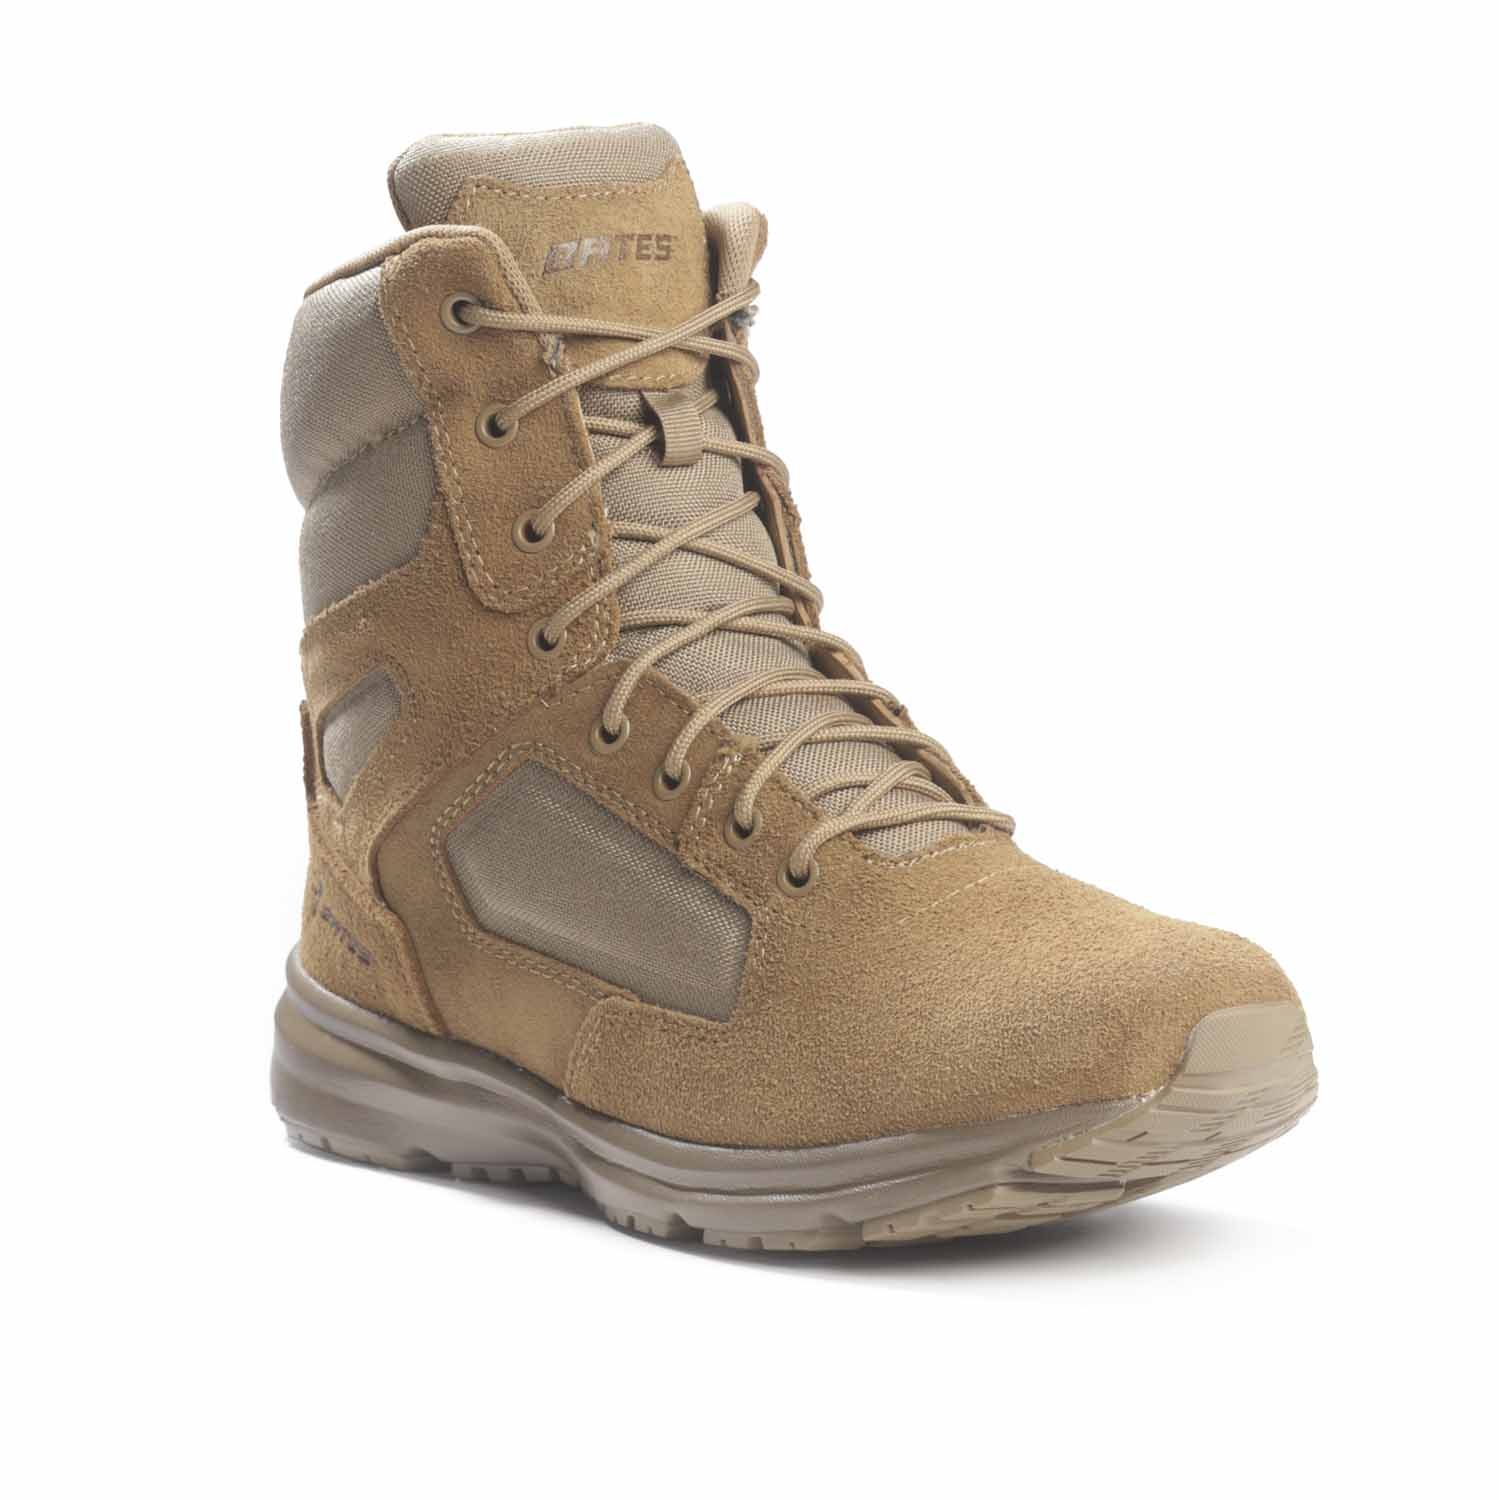 Bates Raide Hot Weather Boot (AR670-1 Compliant)